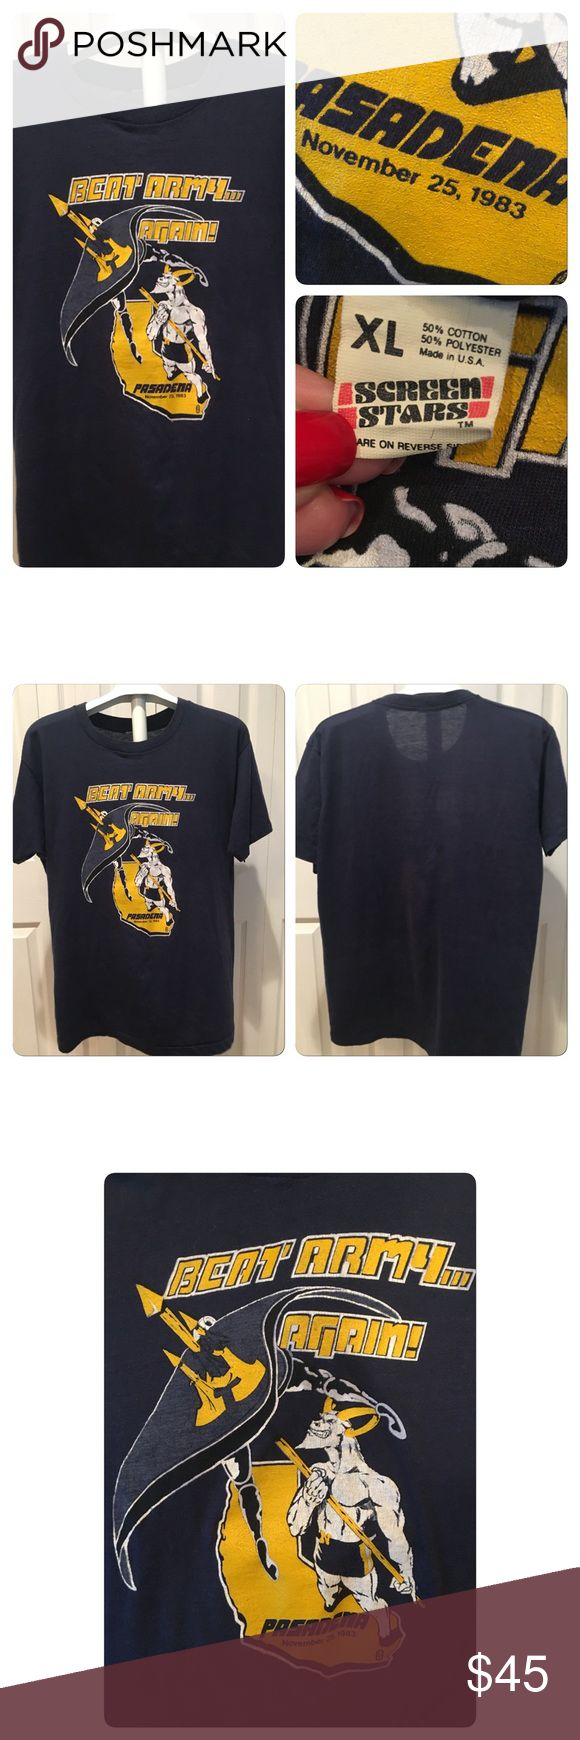 Vtg ARMY NAVY GAME ROSE BOWL 1983 tee 1983 Army Navy college football game. The game was played at the Rose Bowl in Pasadena, California. The Navy Midshipmen defeated Army Black Knits handily 42-13 to maintain their 41-30-7 advantage in the great rivalry series. Printed on a Screen Stars 50-50 Poly cotton navy blue paper thin tee. Bright graphics. Dated Nov 25 1983 . No holes stains rips or tears . Some slight fading and cracking of graphics gives it , it's awesome vintage appeal Vintage…